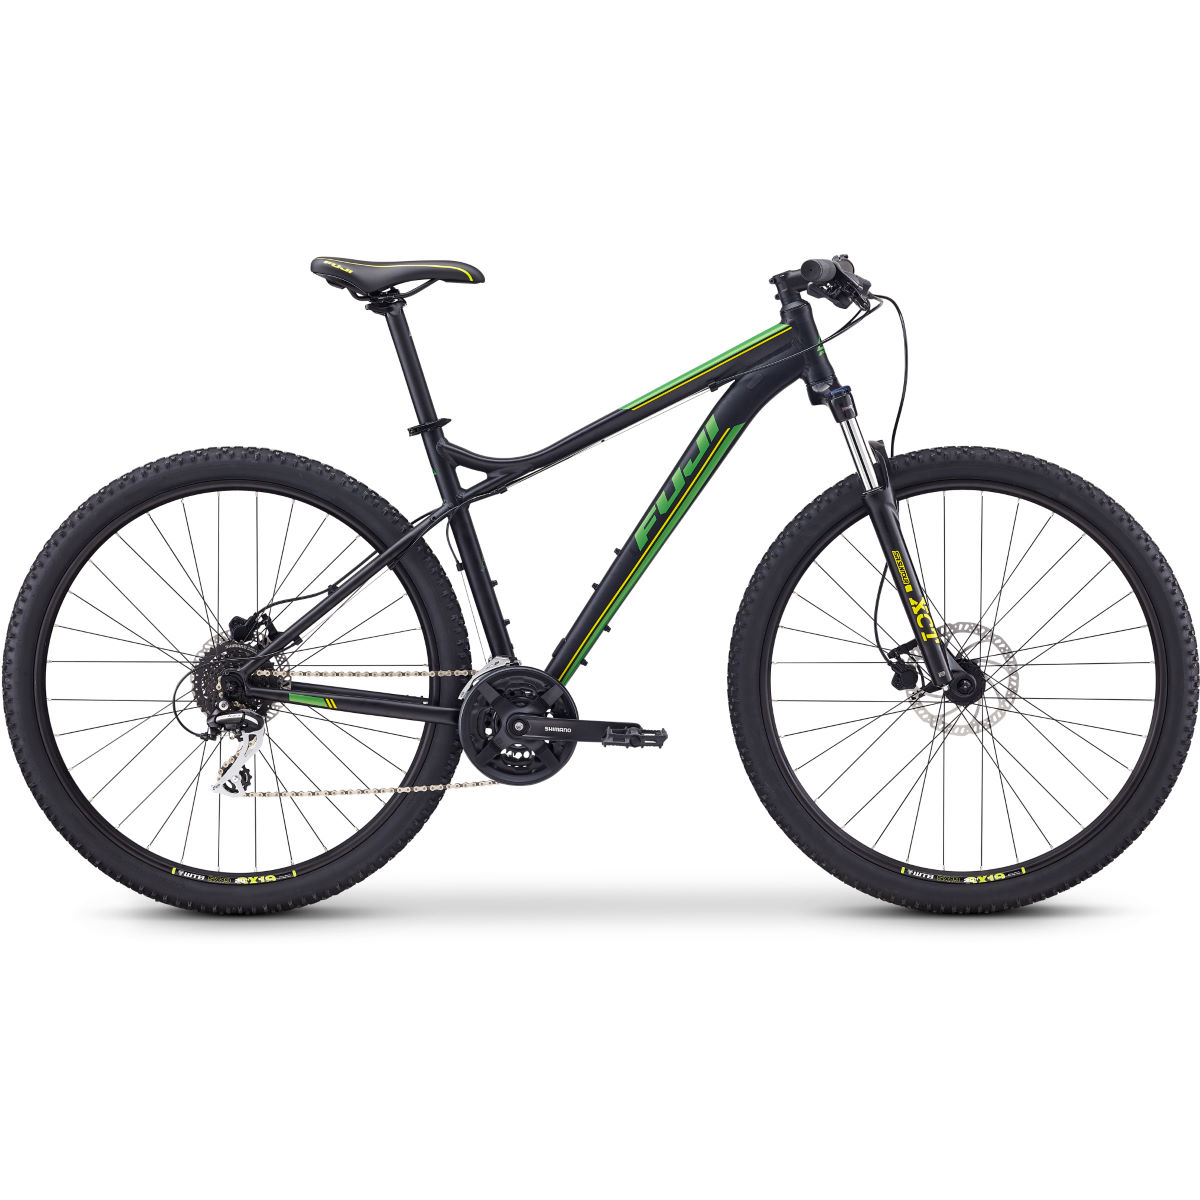 Fuji Nevada 29 1.7 Hardtail Bike (2020) – 23″ Satin Black